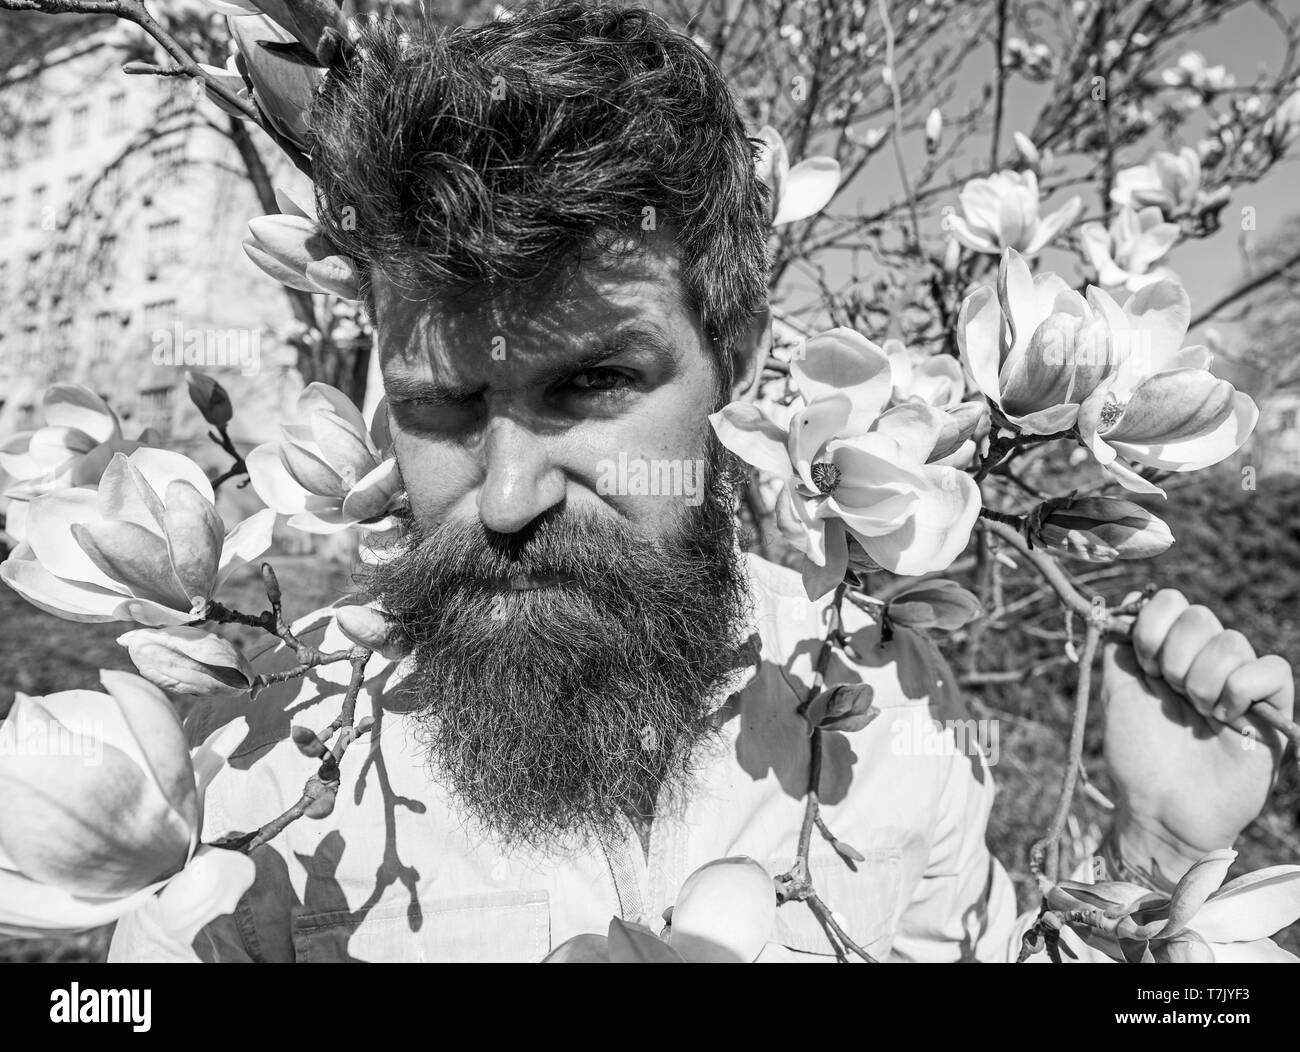 Guy with grimace on face because of bright sun. Sunny day concept. Man with beard and mustache, hipster posing near magnolia flowers and branches on background, on sunny day. - Stock Image